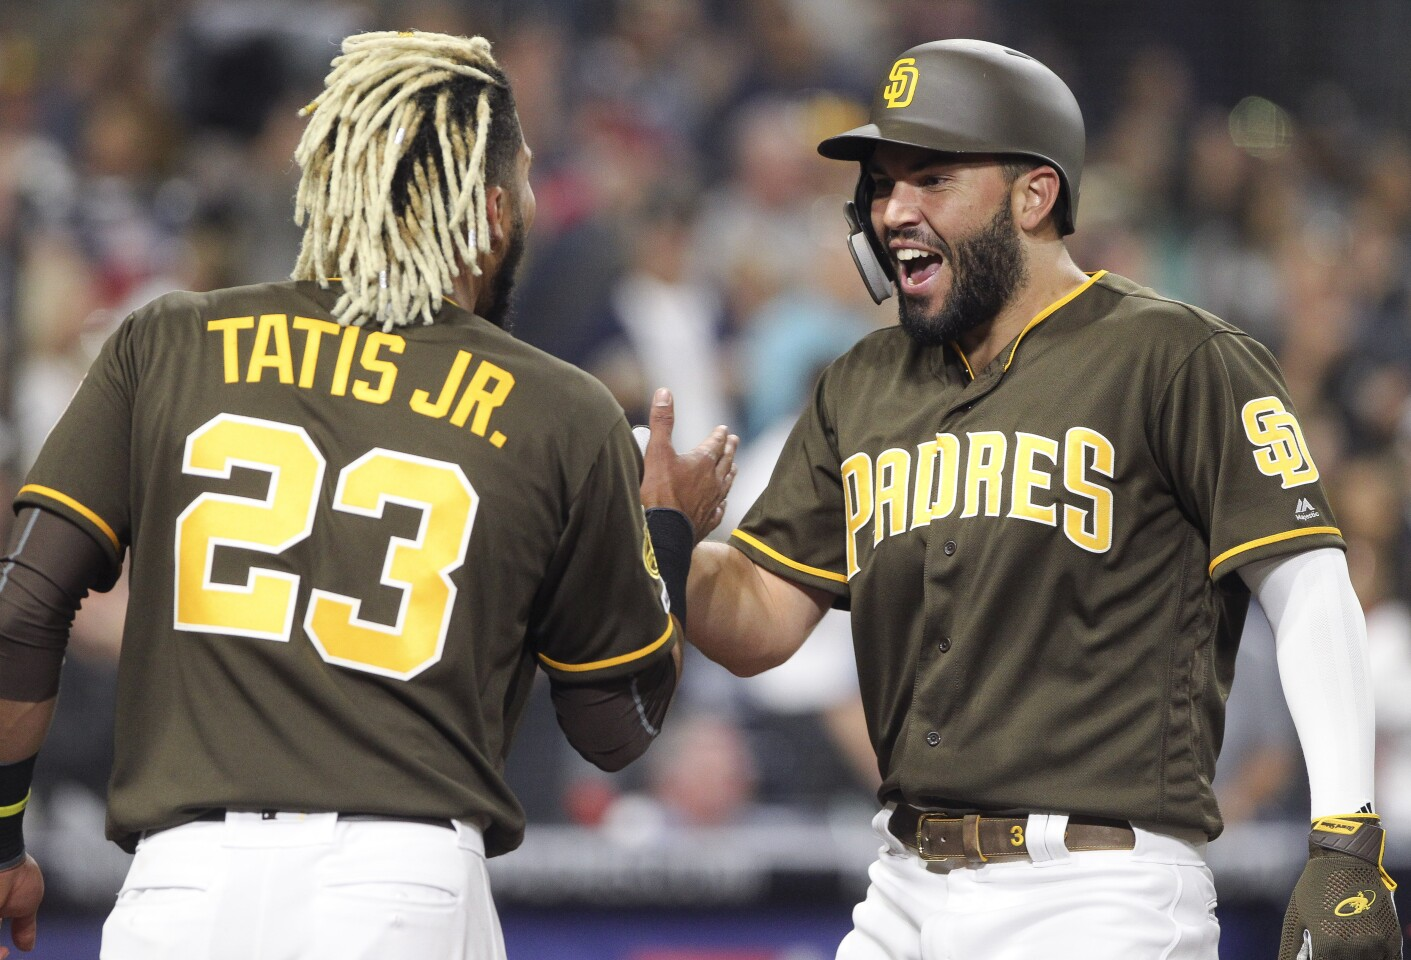 The Padres' Eric Hosmer, right, and Fernando Tatis Jr. celebrate Hosmer's home run just after Tatis hit a home run in the sixth inning against the Cardinals at Petco Park on Friday, June 28, 2019 in San Diego, California.